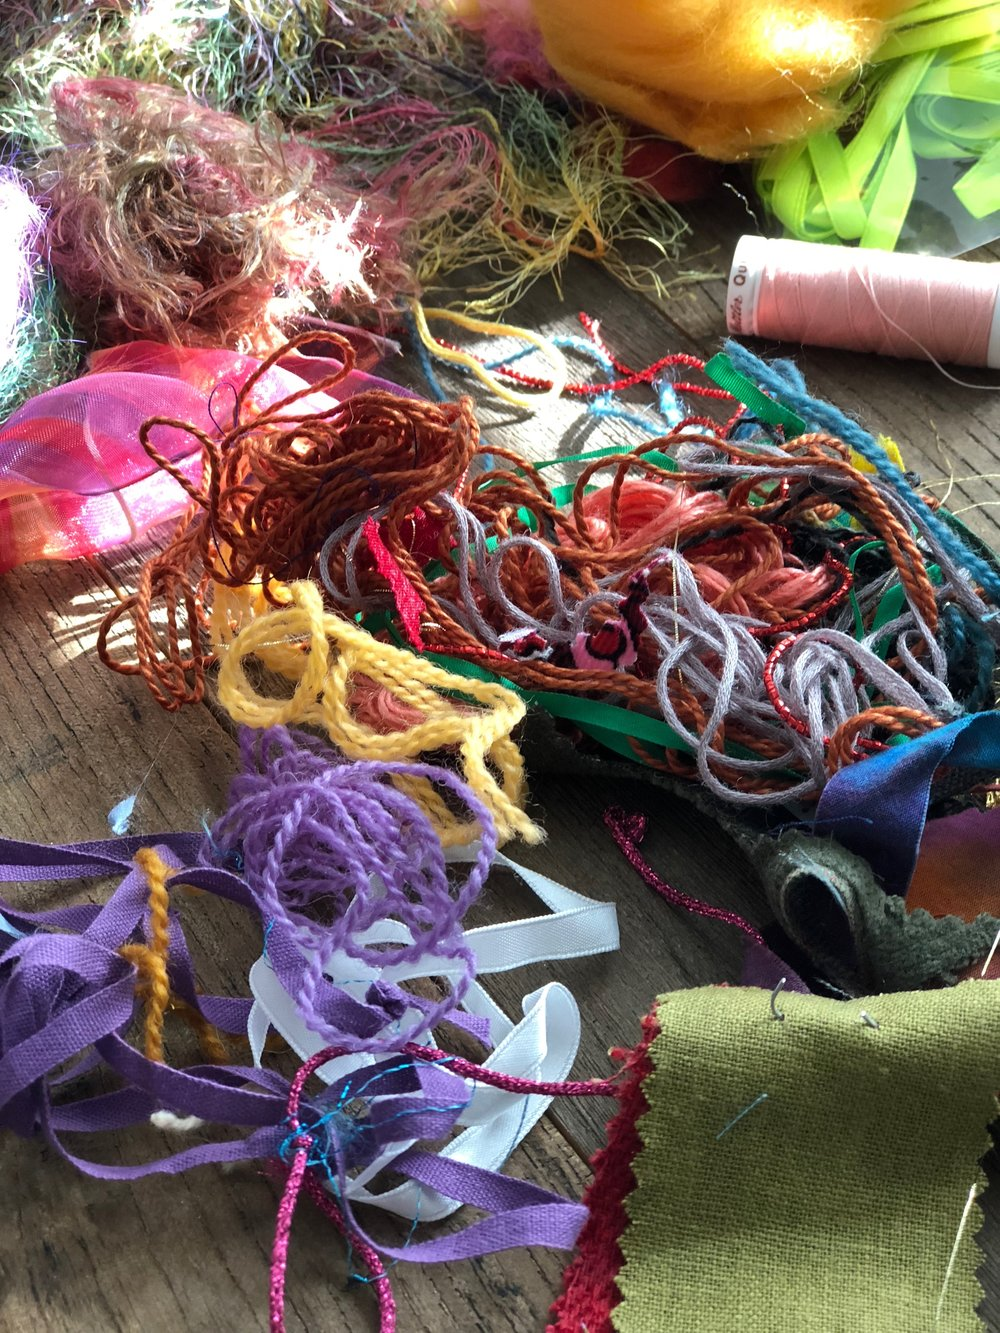 Assorted embellishment yarns and fibers